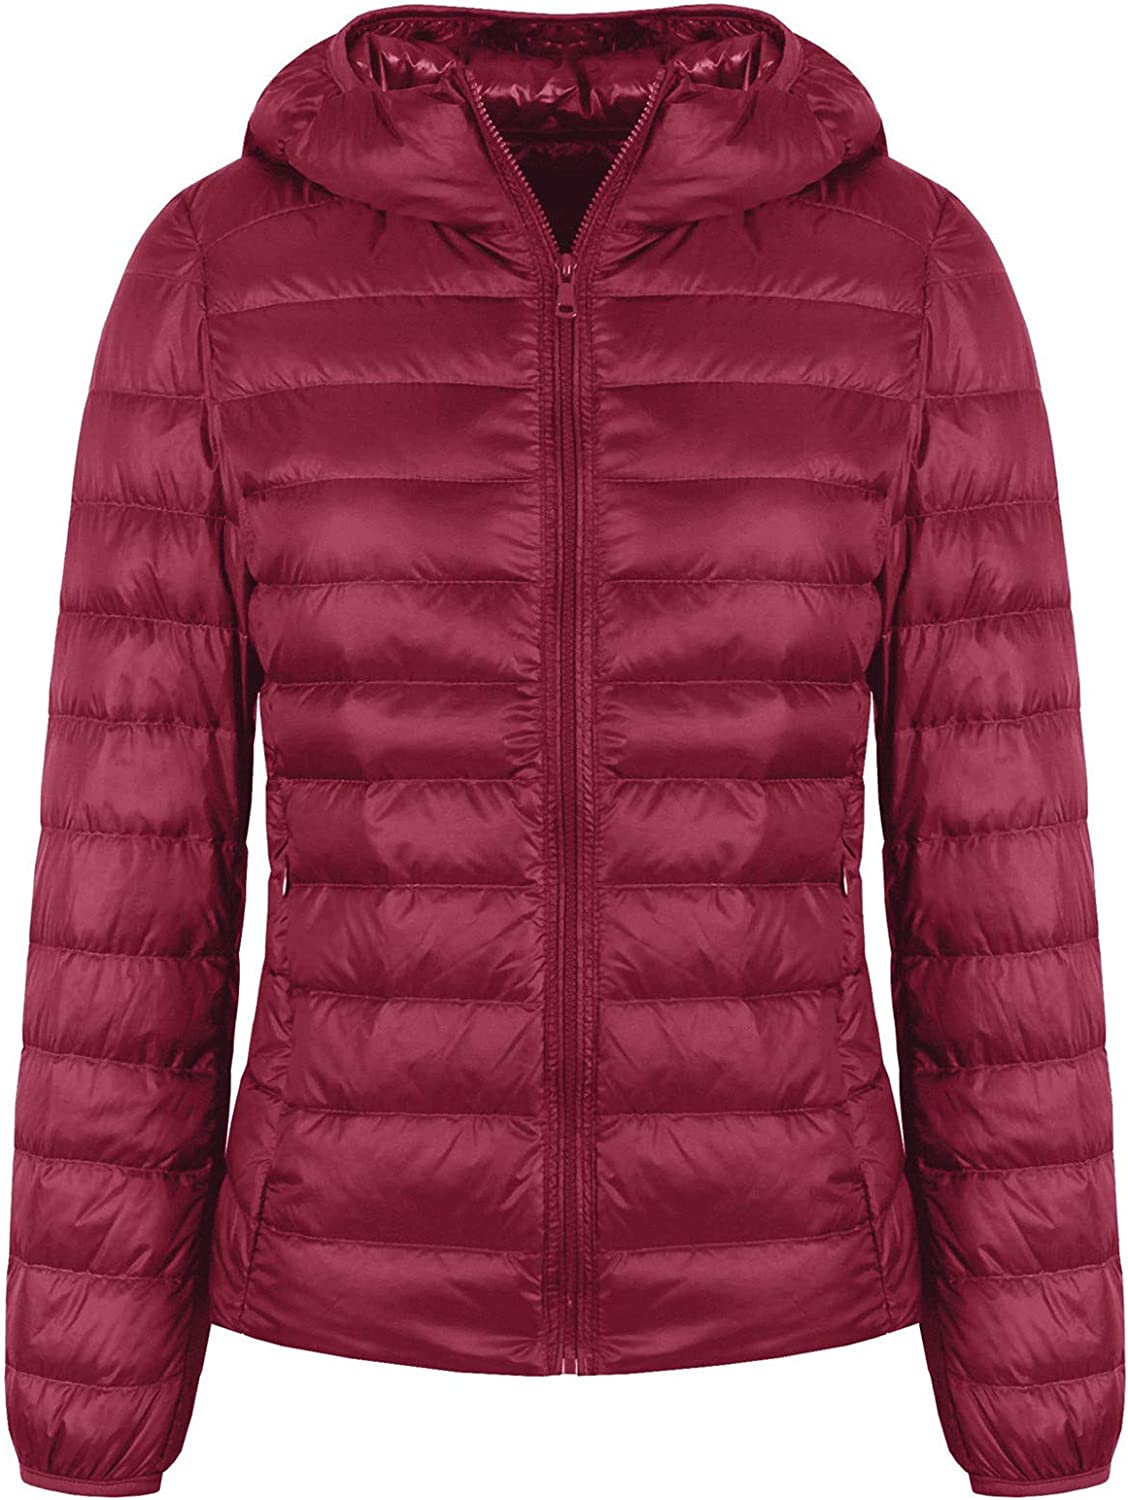 Valennia Women's Short Down Jacket Ultra Light Weight Packable Down Coat with Hood and 2 Pockets